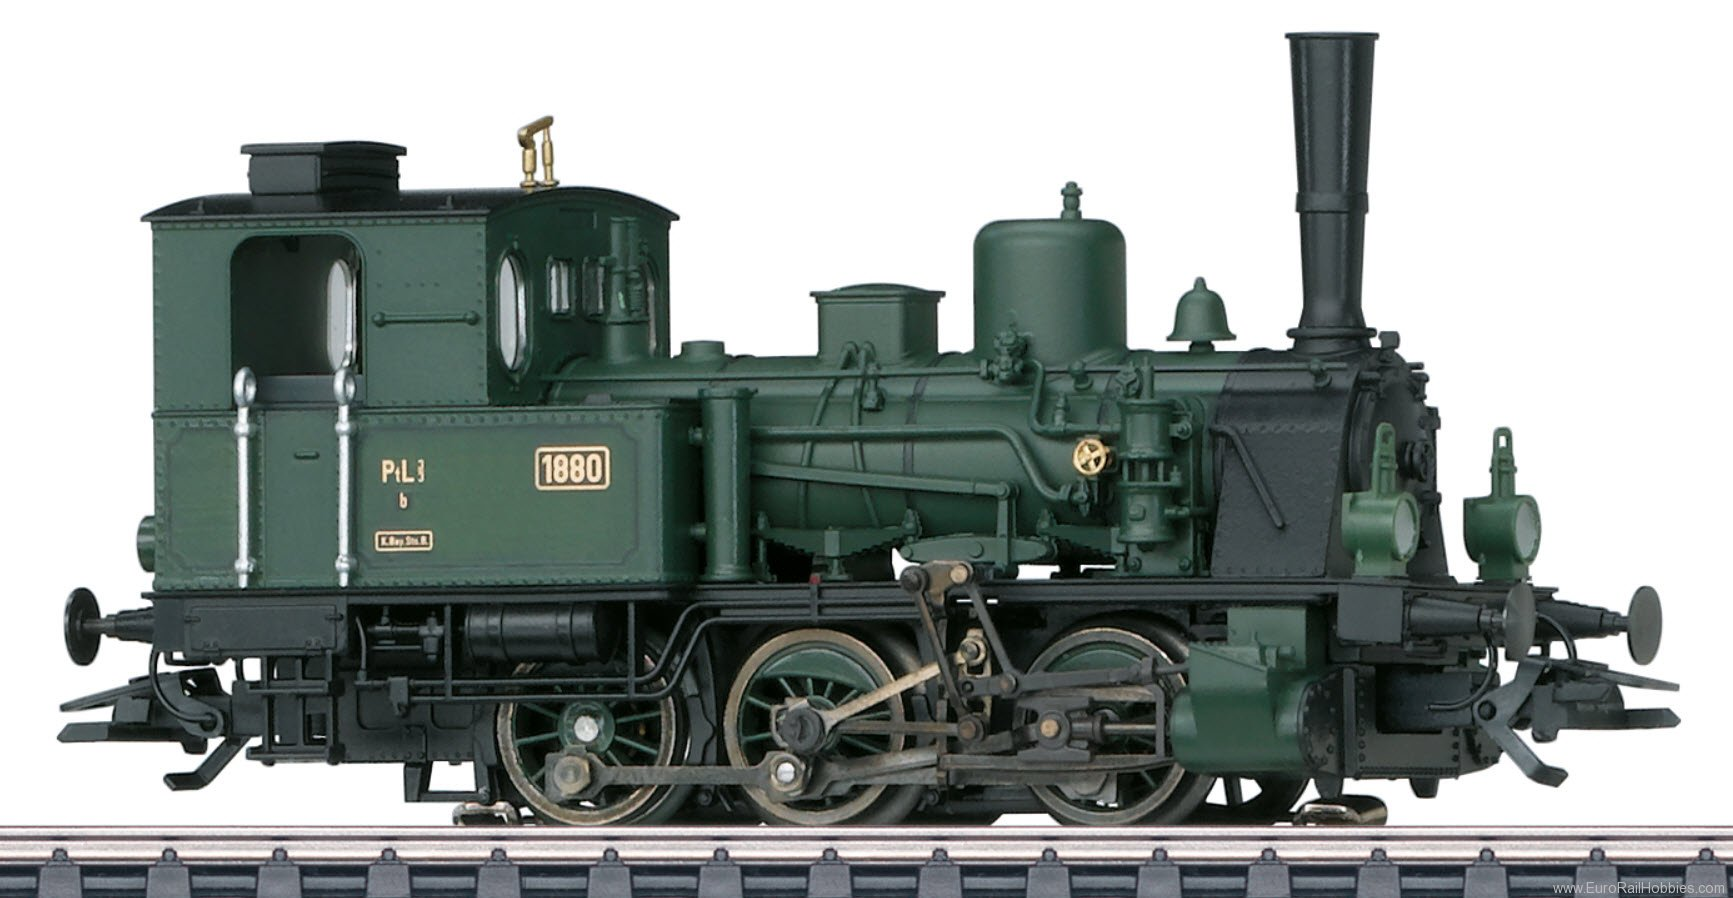 Marklin EUROTRAIN Special Edition K.Bay.Sts.B. Steam locomotive PtL 3/3, MFX+ Sound